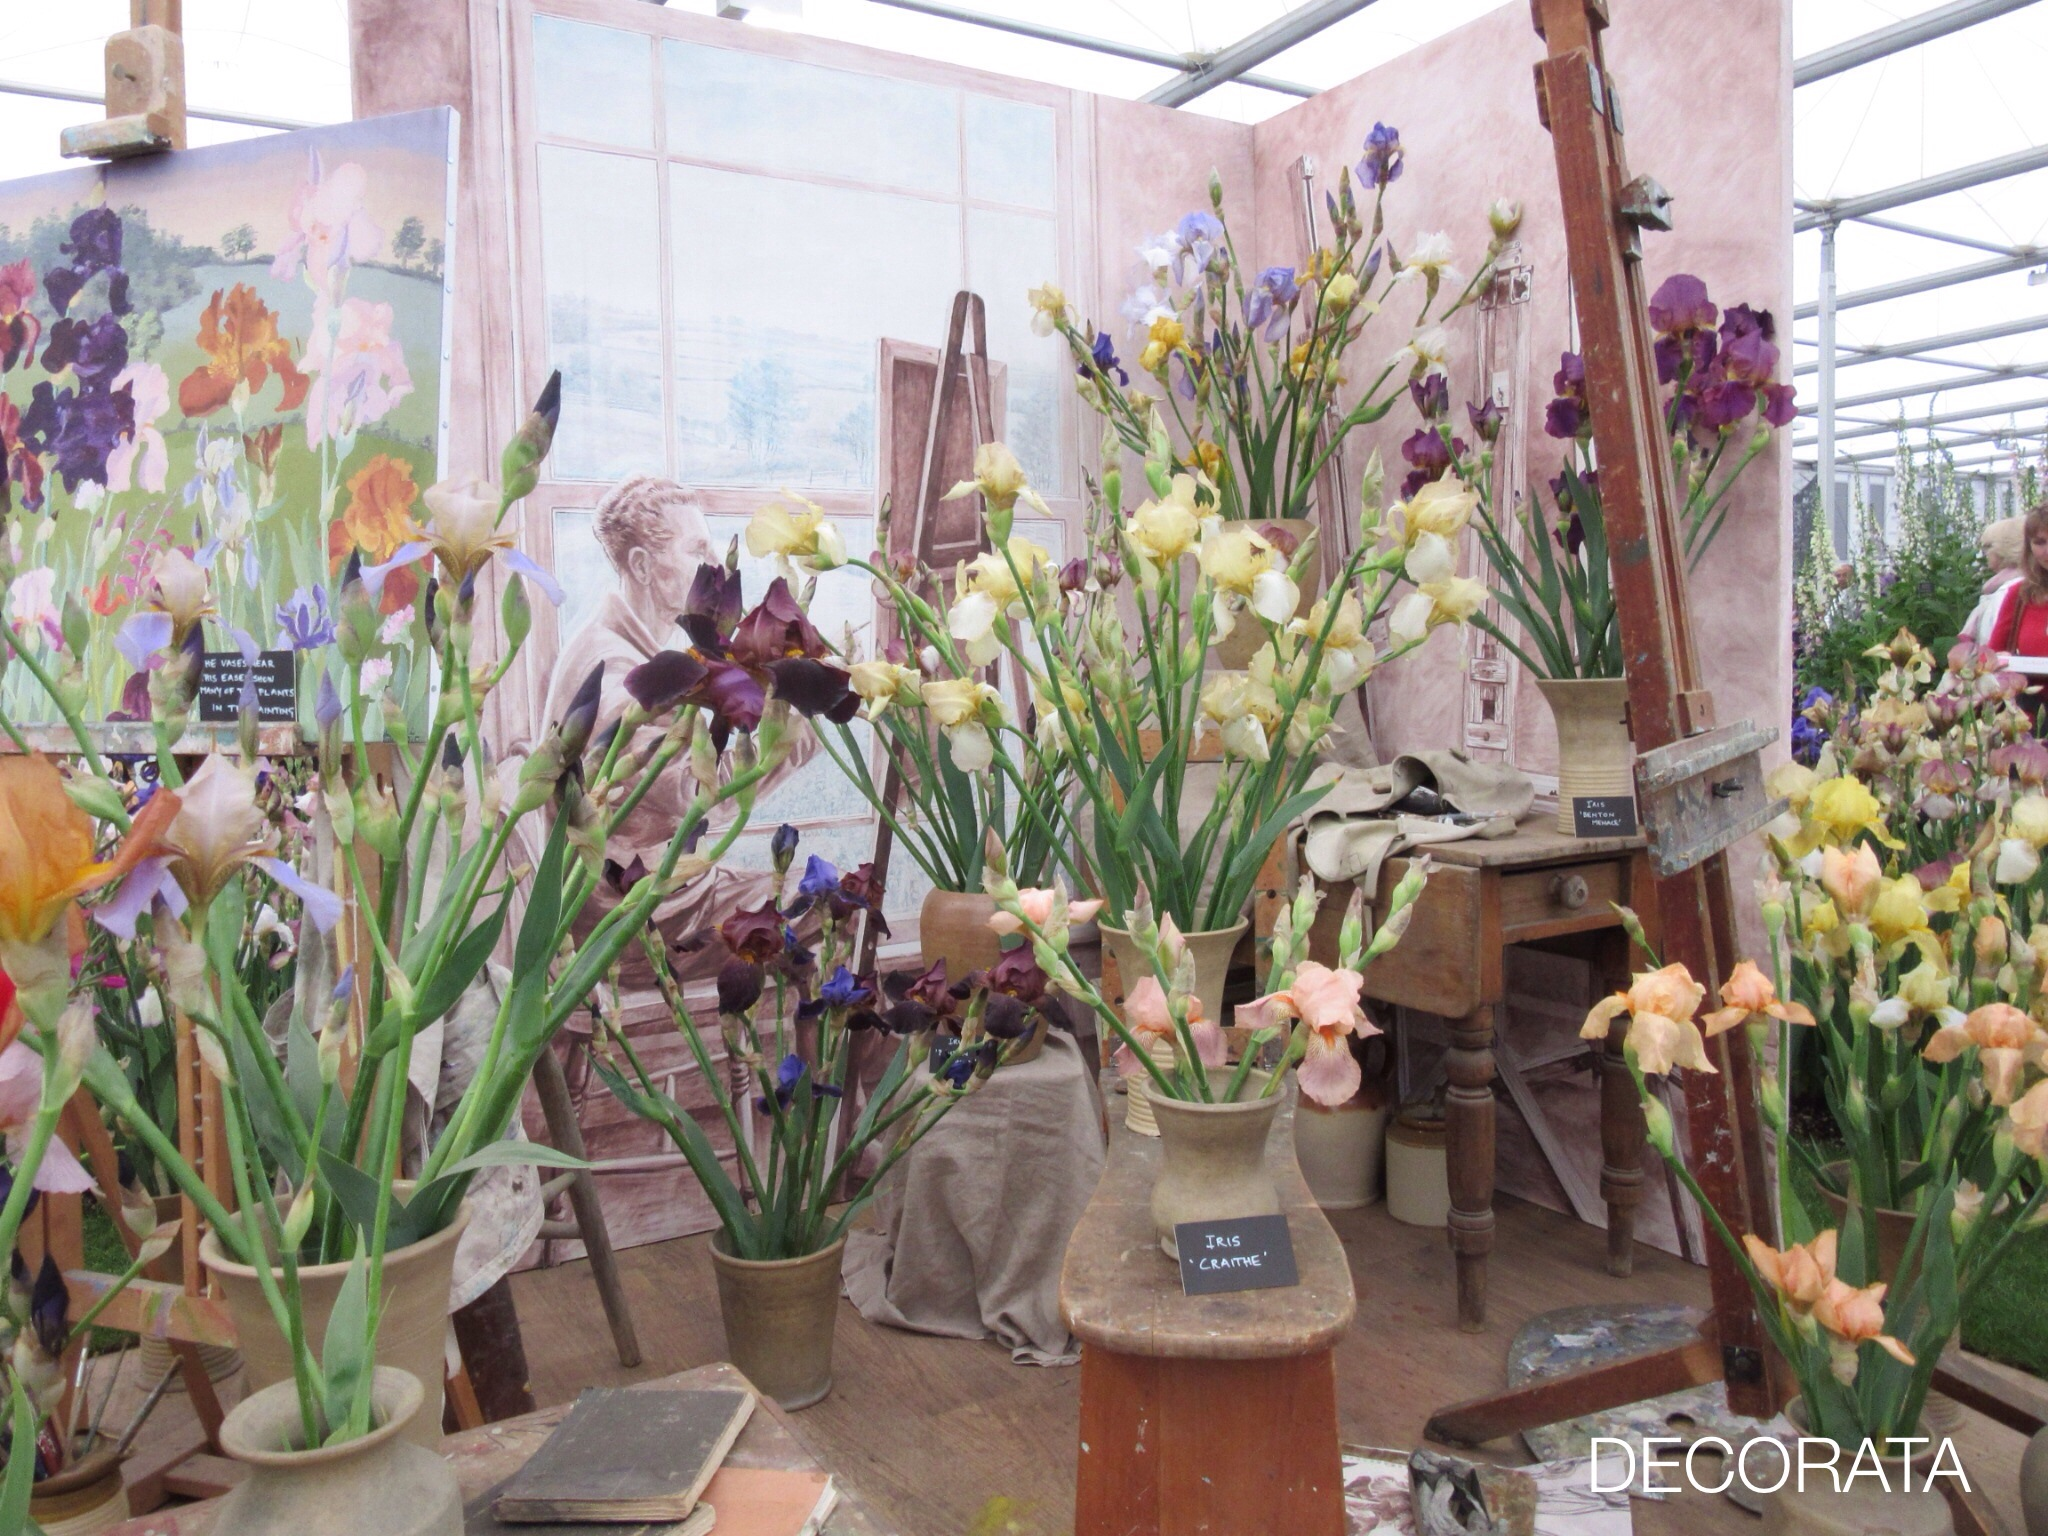 RHS Chelsea Flower Show, Decorata Design, iris, sue womersley